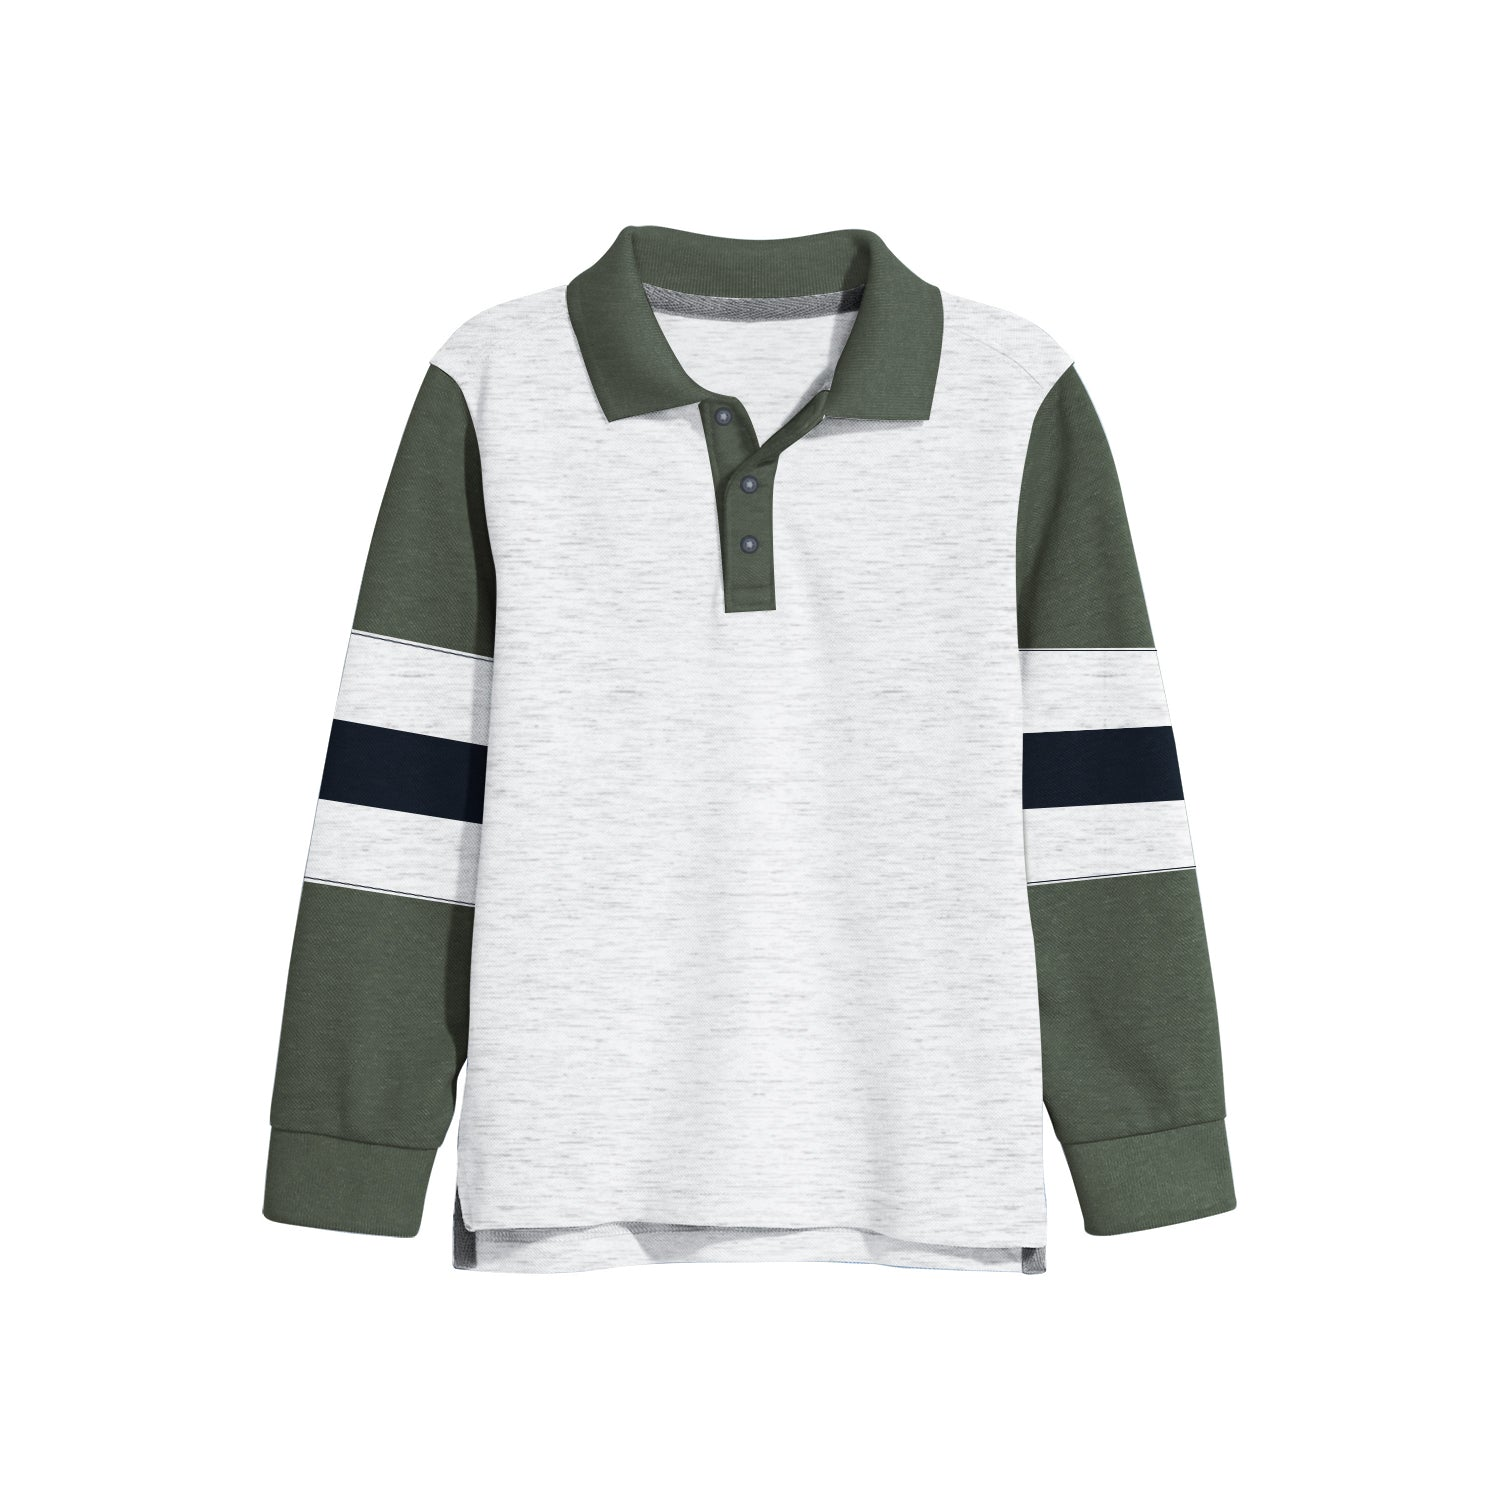 NEXT Single Jersey Polo Shirt For Kids-White Melange & Olive-BE9348